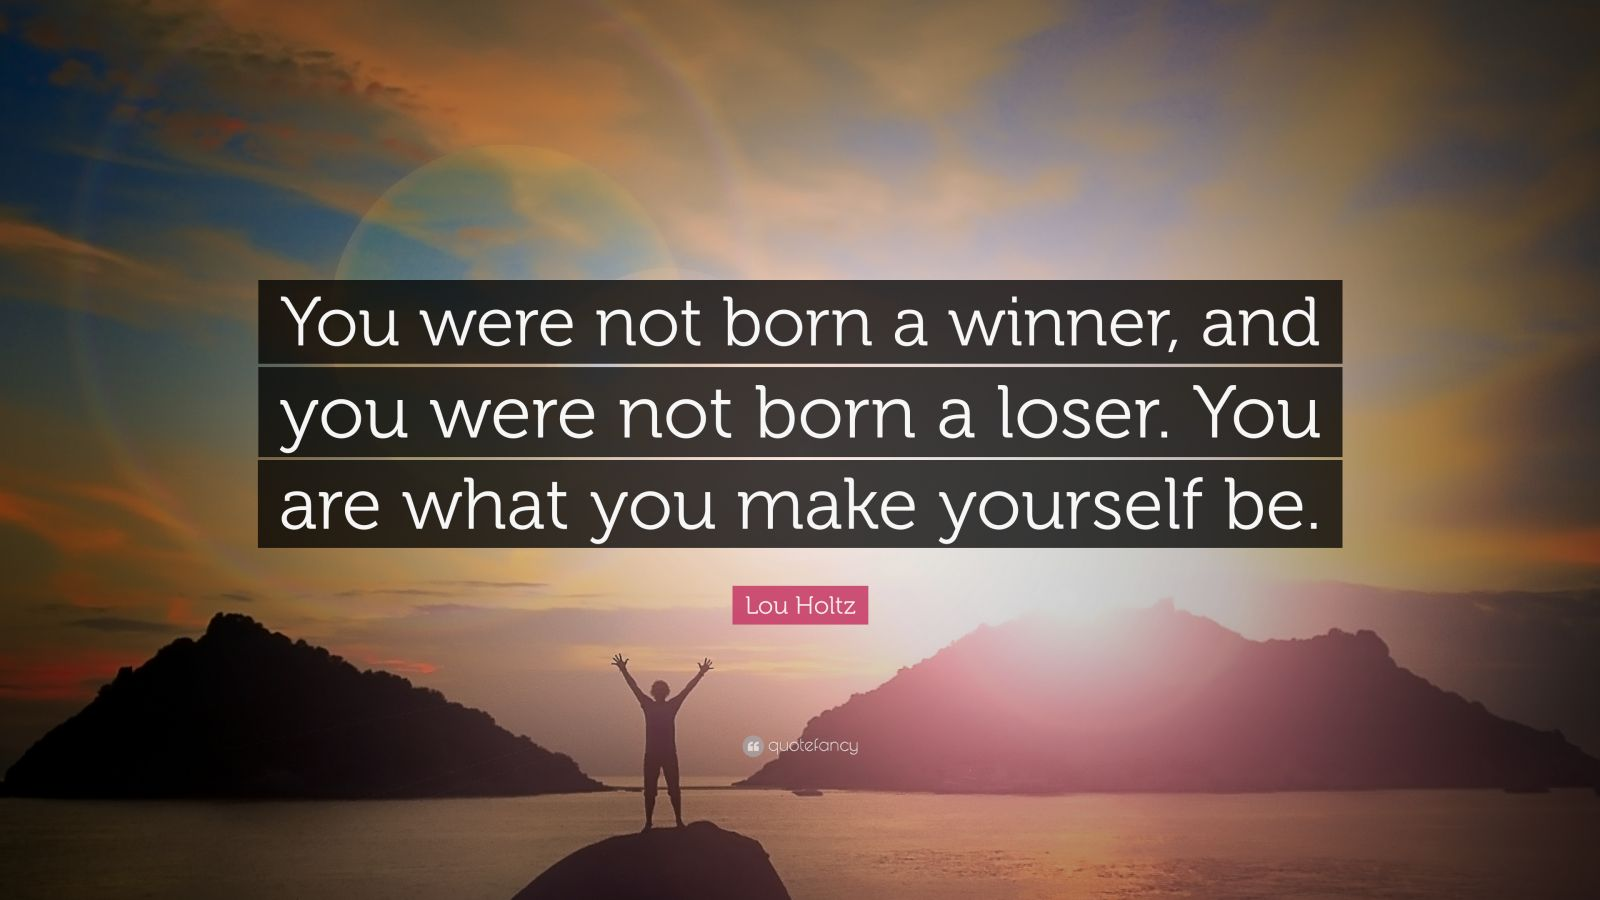 """Lou Holtz Quote: """"You were not born a winner, and you were not born a loser. You are what you make yourself be."""""""